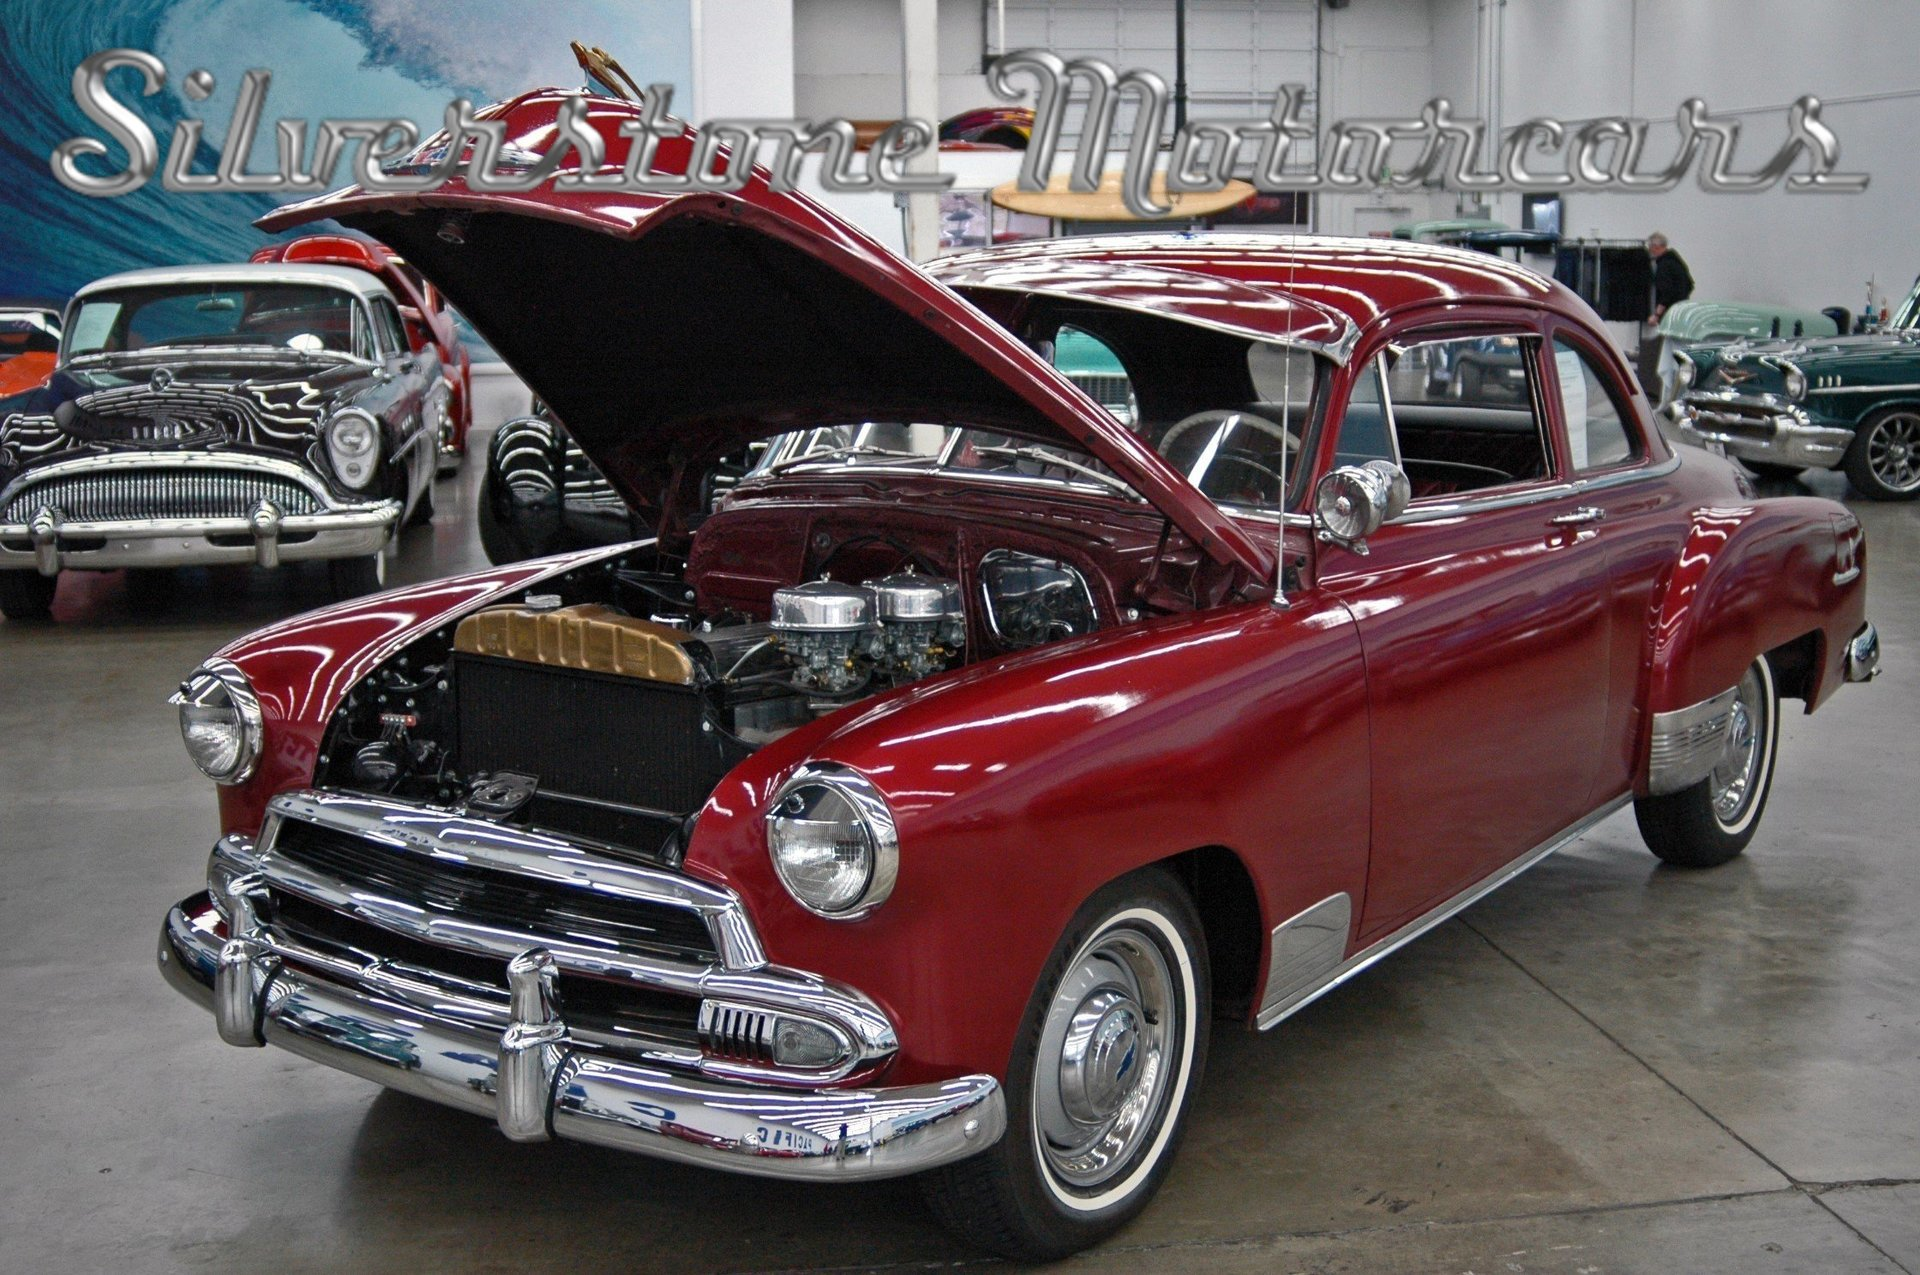 1951 Chevrolet Bel Air Silverstone Motorcars Paint Colors